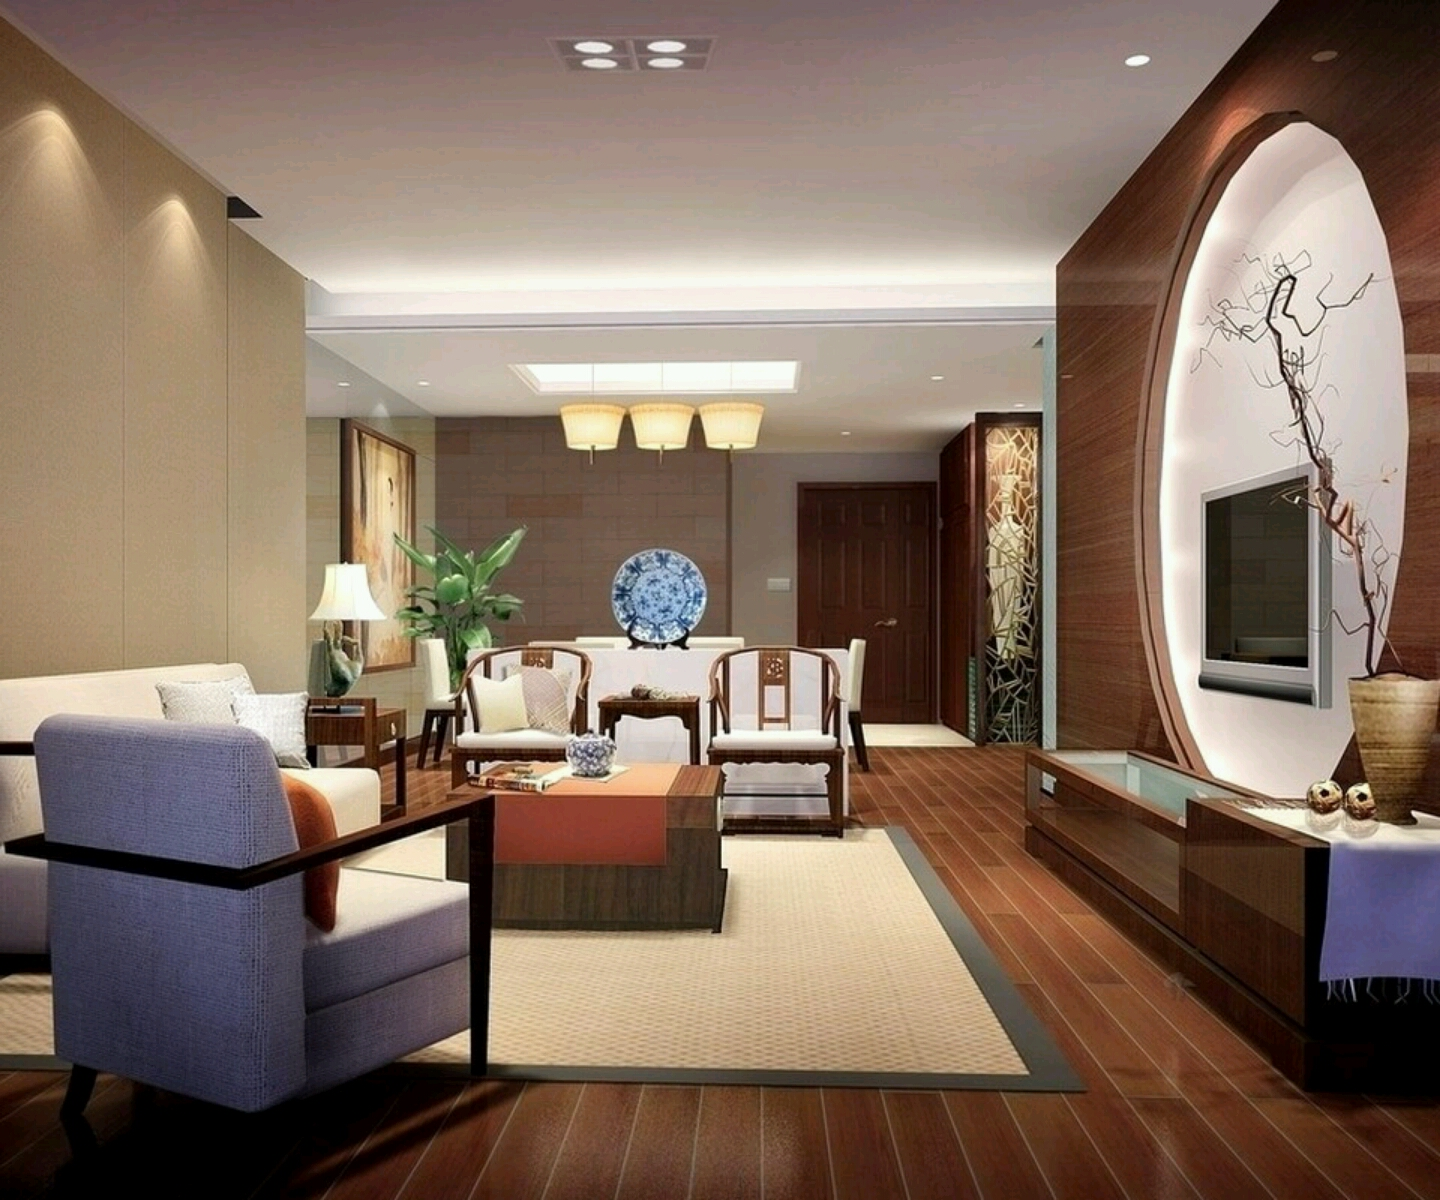 luxury homes interior decoration living room designs ideas living room design ideas dgmagnets com